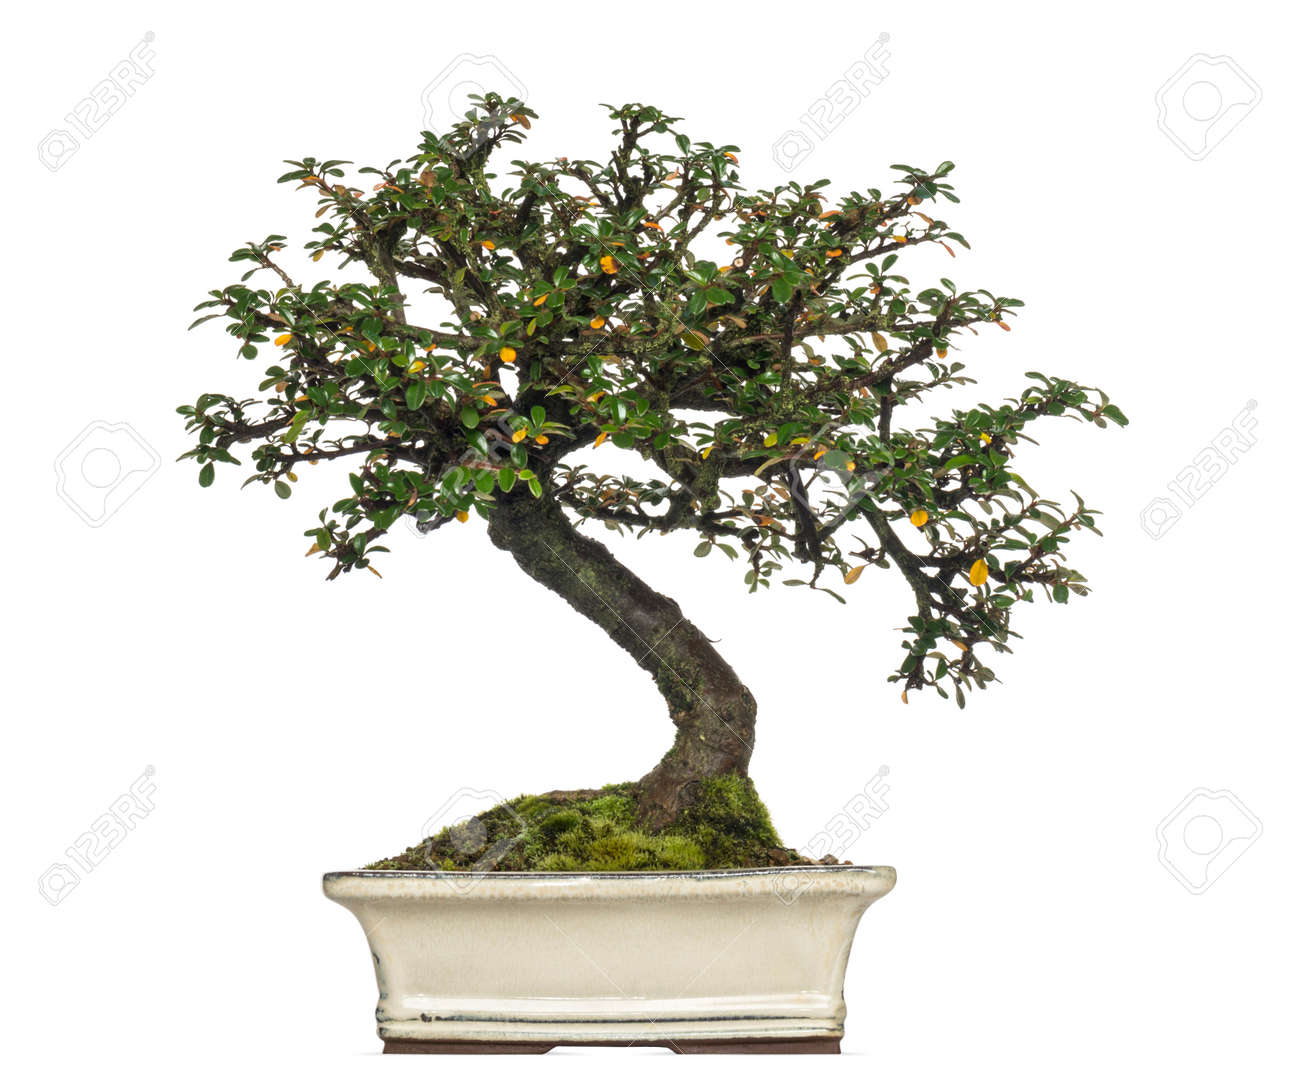 Cotoneaster Horizontalis Bonsai Tree Isolated On White Stock Photo Picture And Royalty Free Image Image 25542627